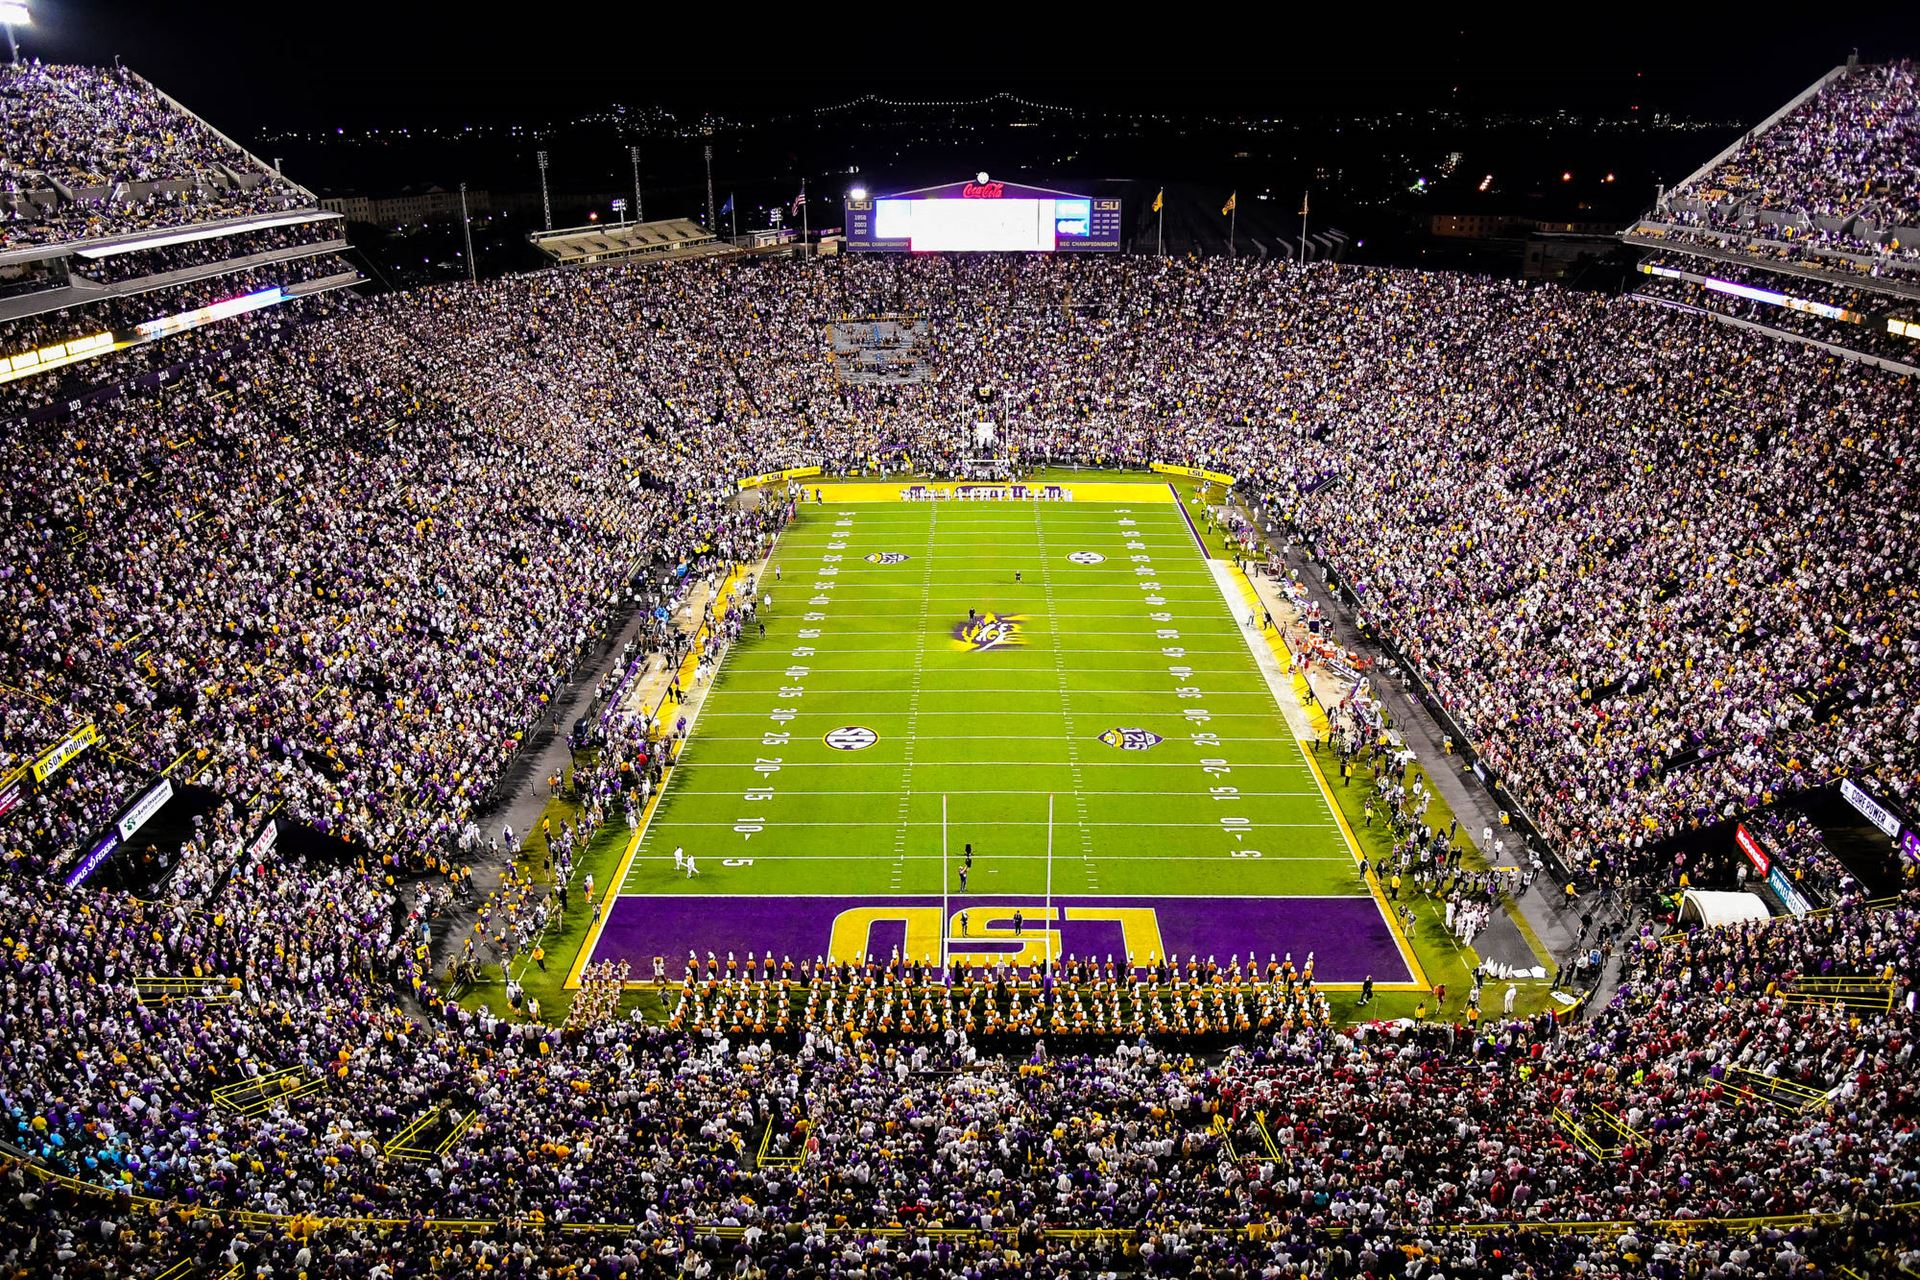 Lsu Academic Calendar 2022 2023.Southern And Grambling Football Set To Play Lsu In 2022 2023